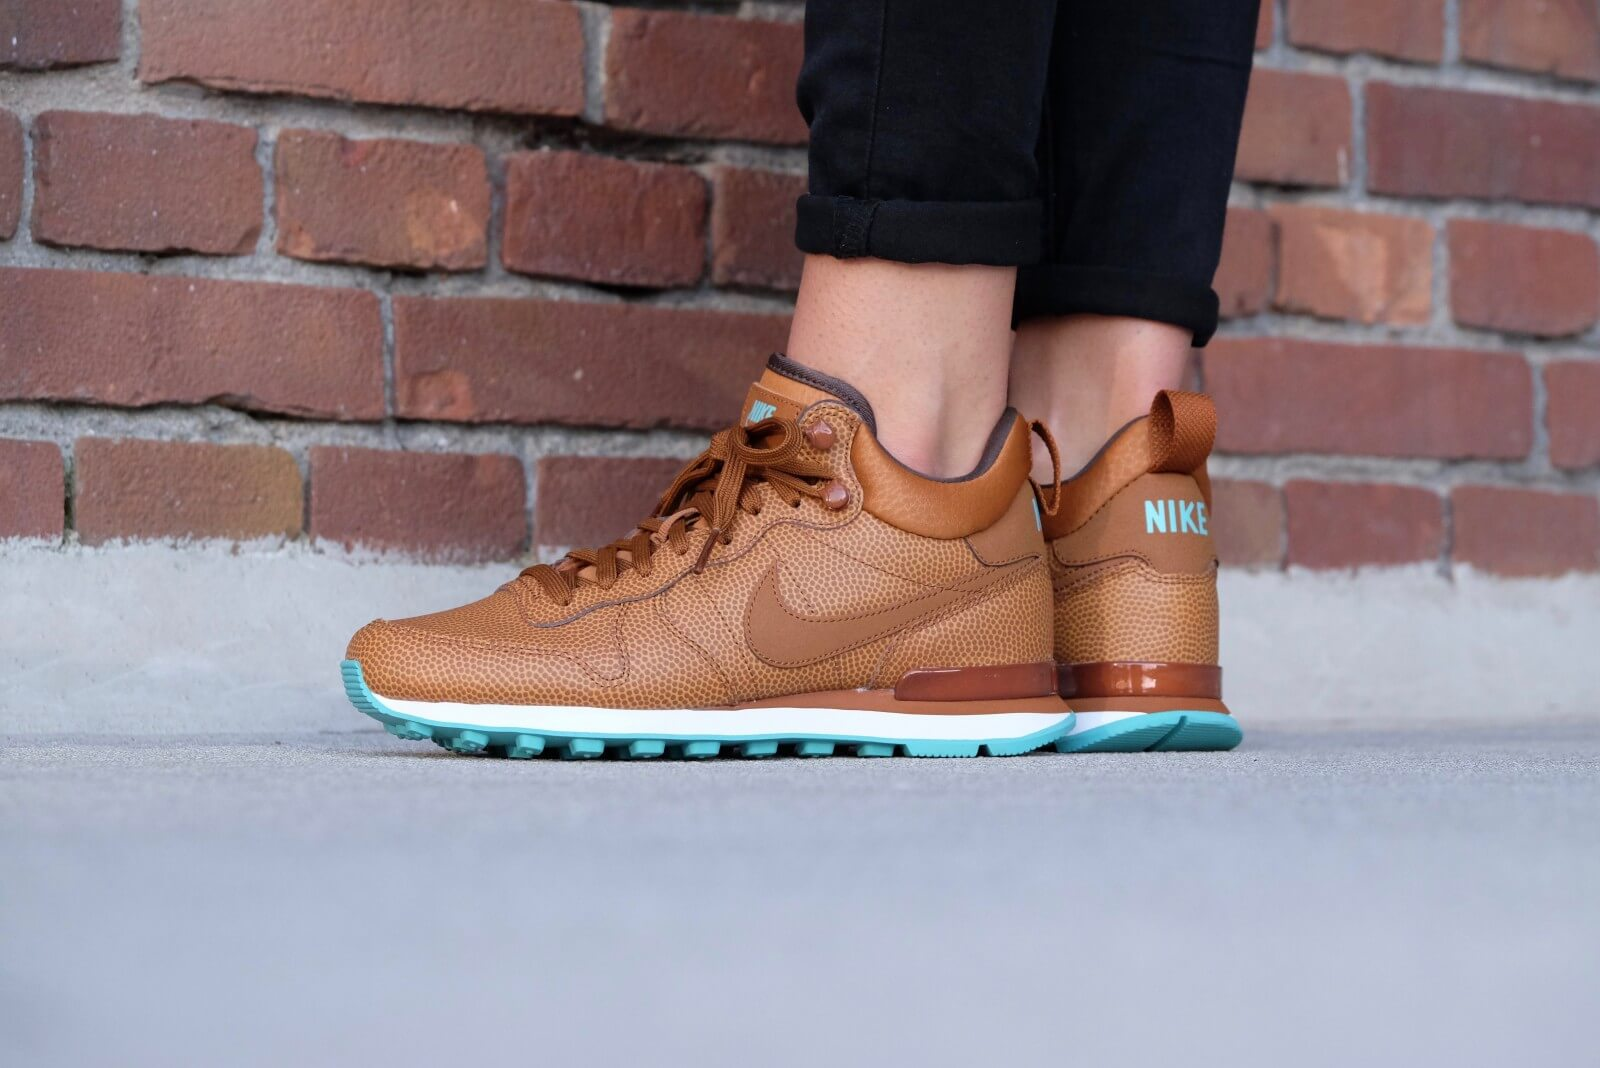 Nike Wmns Internationalist Mid Leather Hazelnut Washed Teal 859549 200